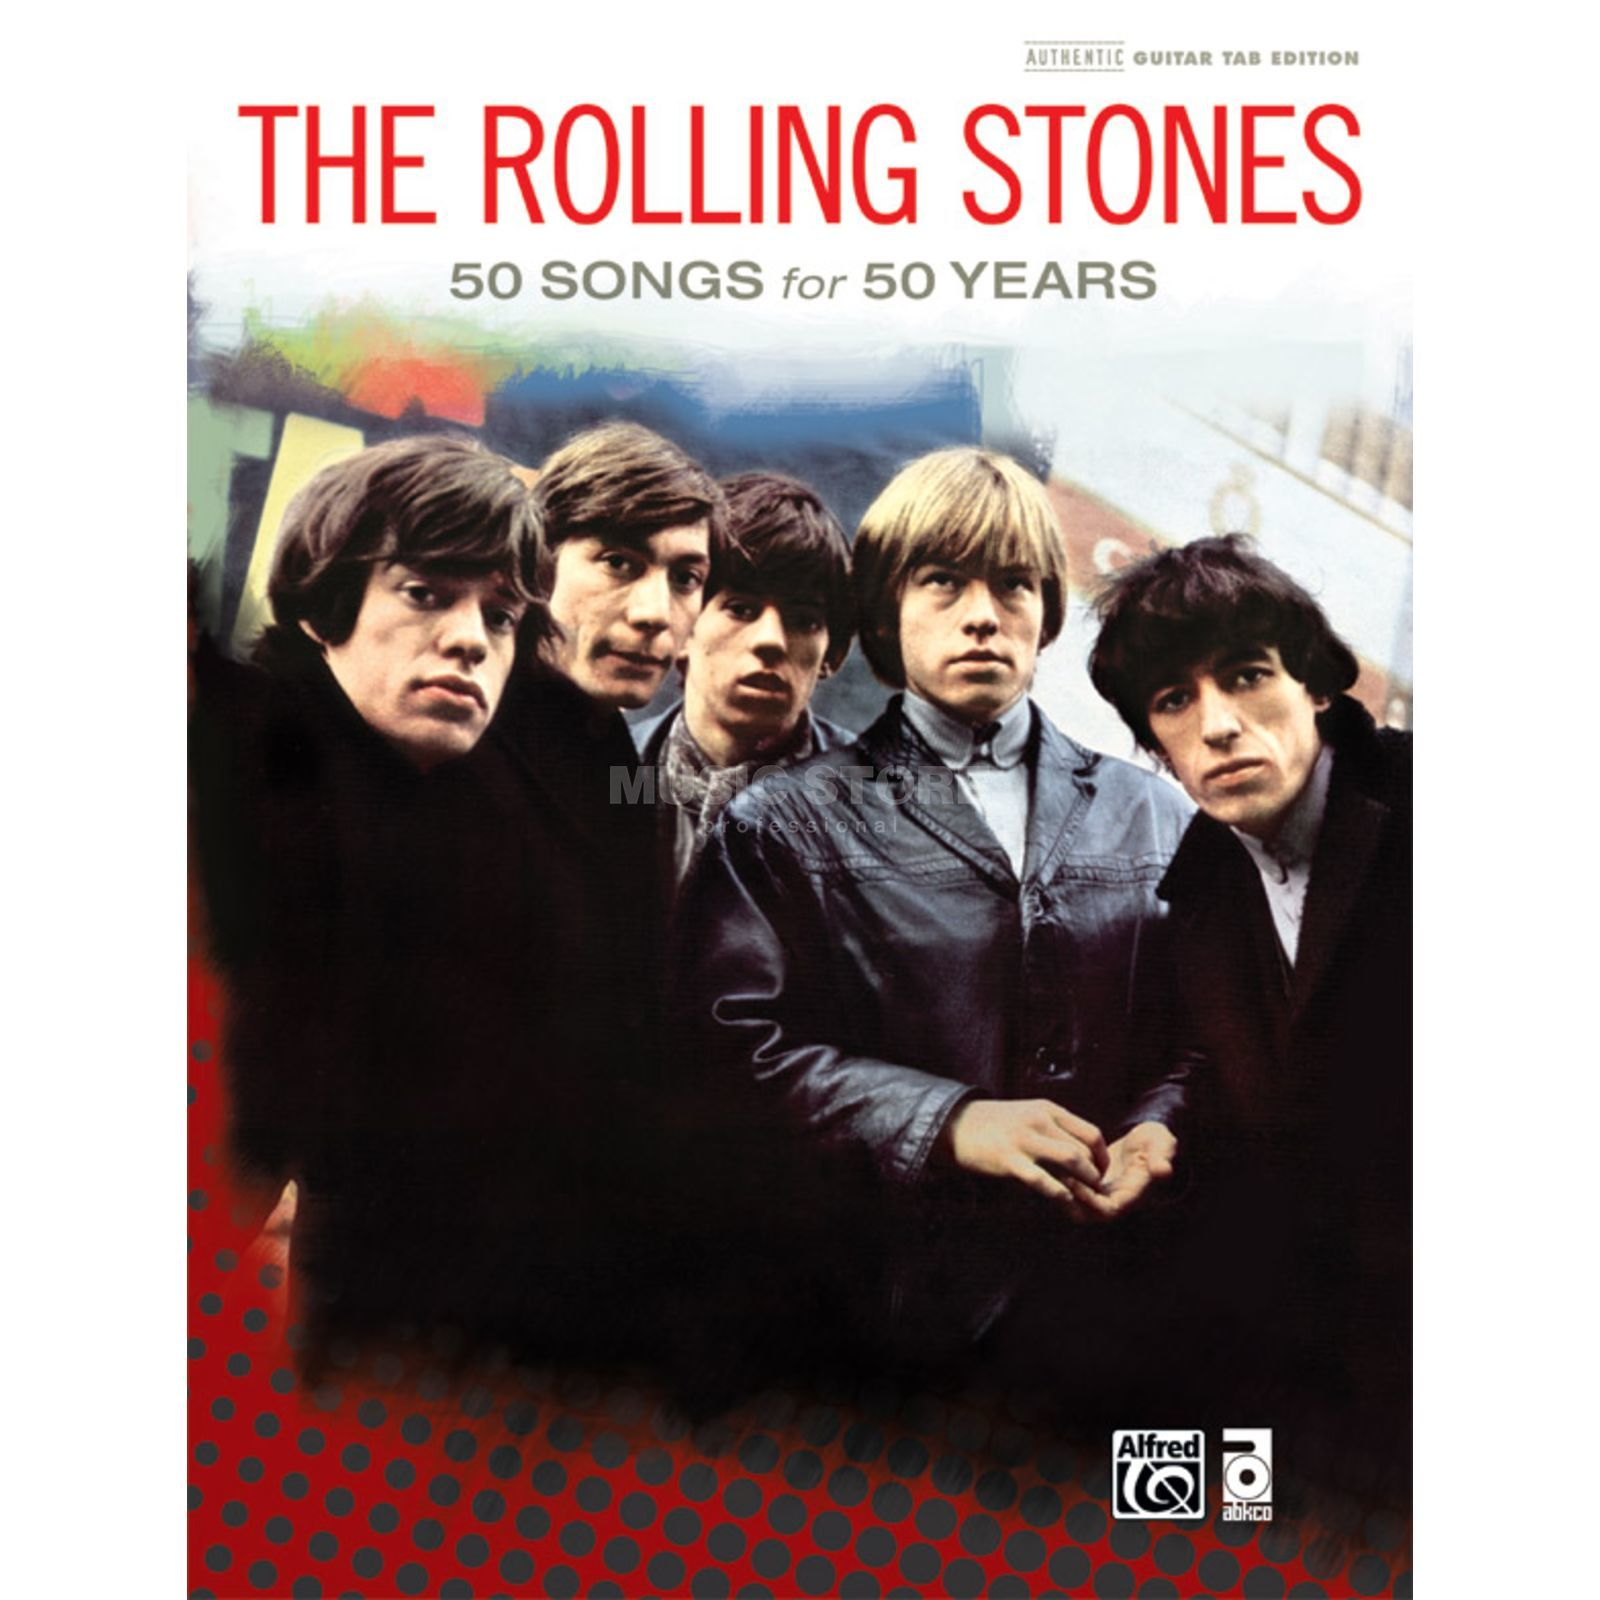 Alfred Music The Rolling Stones: 50 Songs for 50 Years Produktbillede